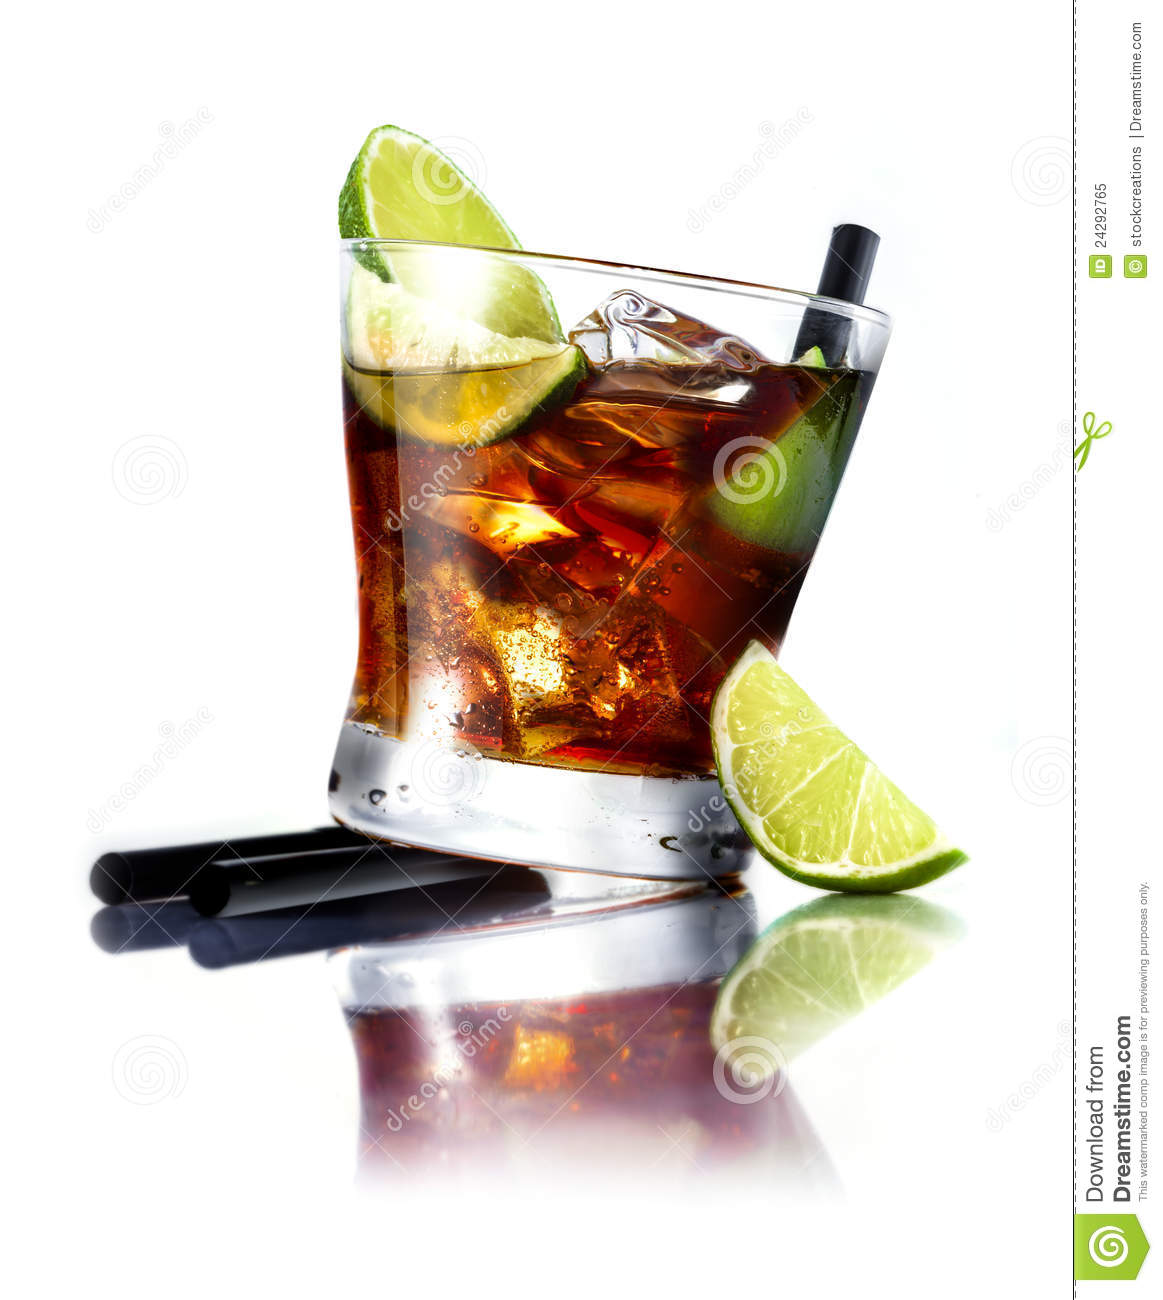 Cuba Libre Cocktail Cuba Libre Cocktail Royalty Free Stock Photo Image 24292765